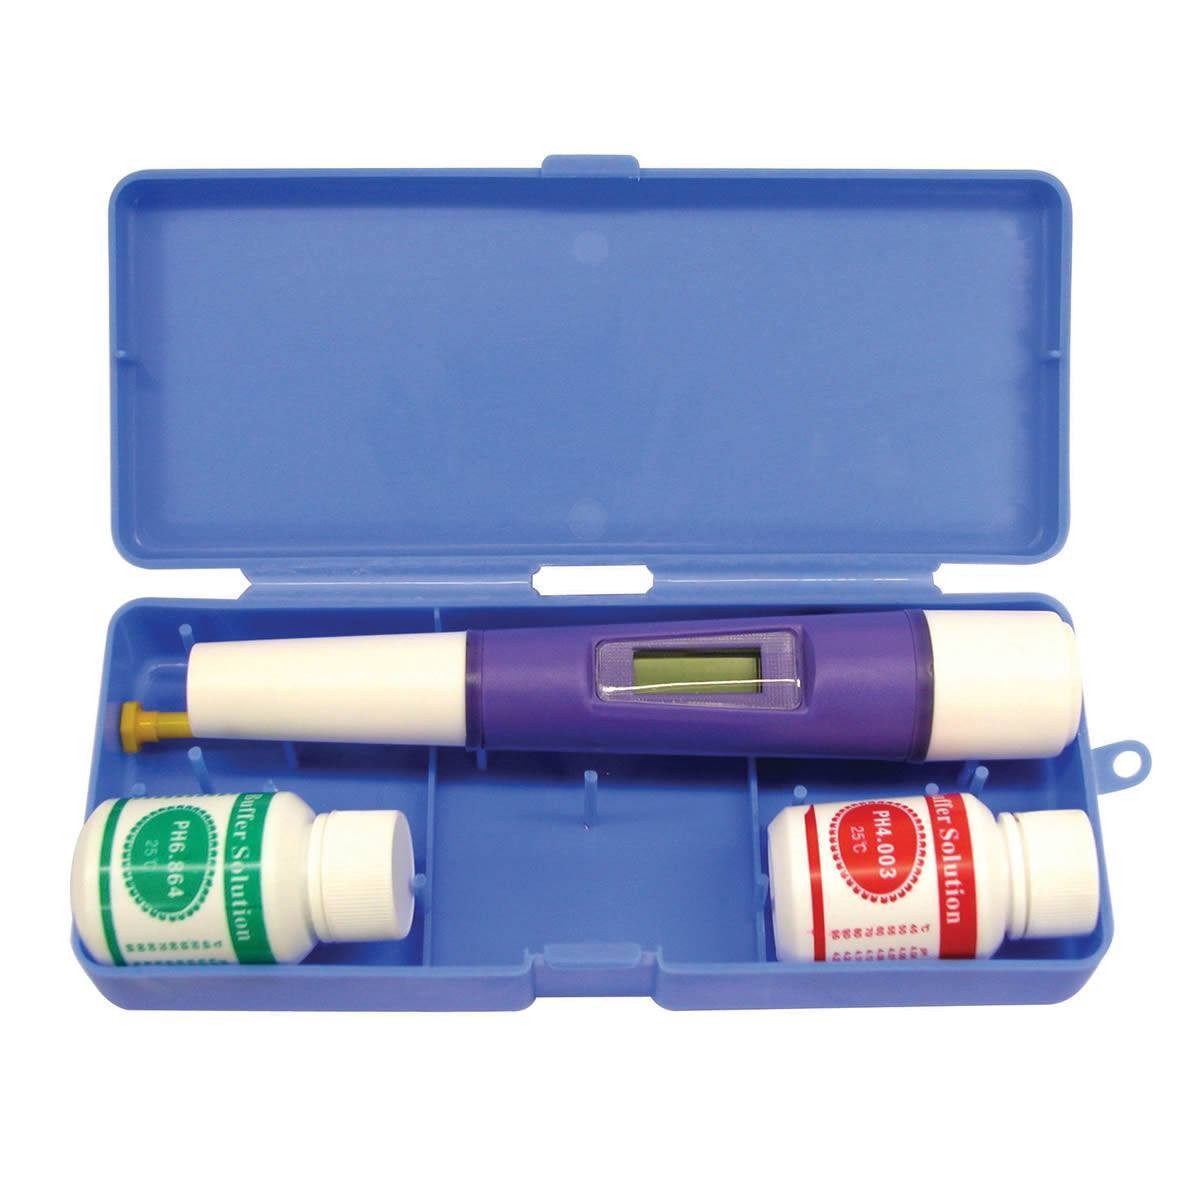 Digitaler pH-Teststift